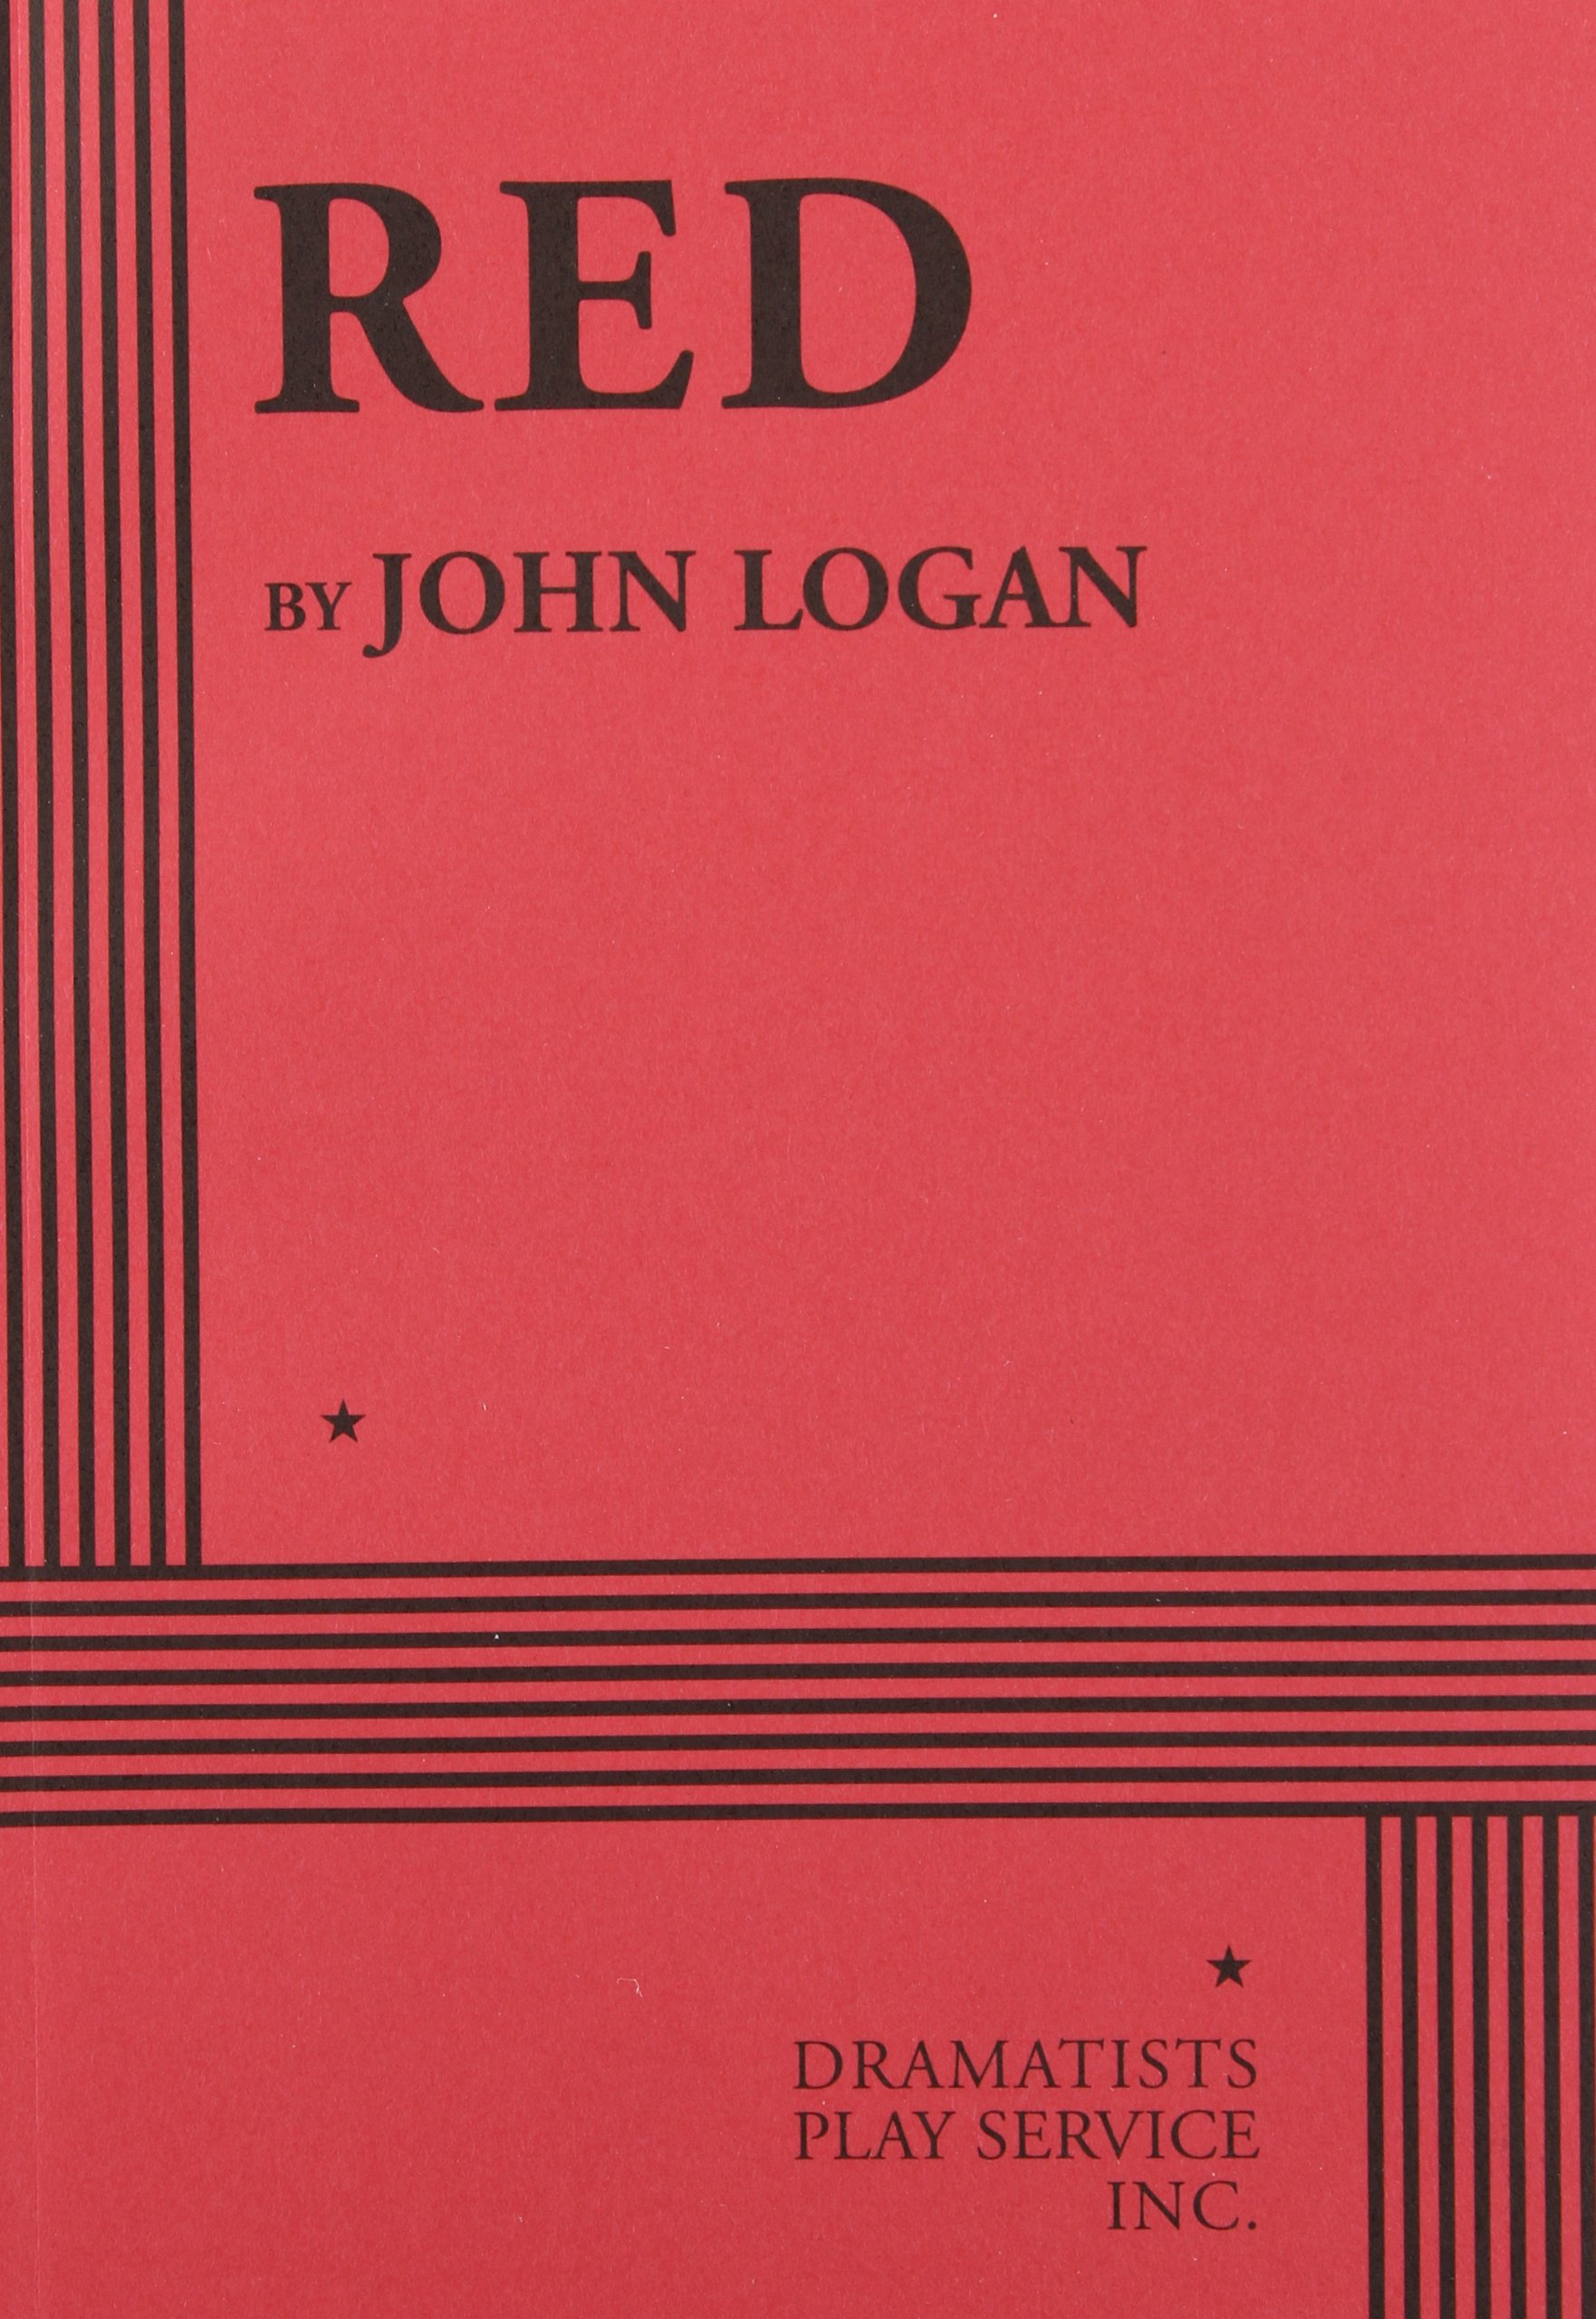 Image result for red by john logan cover